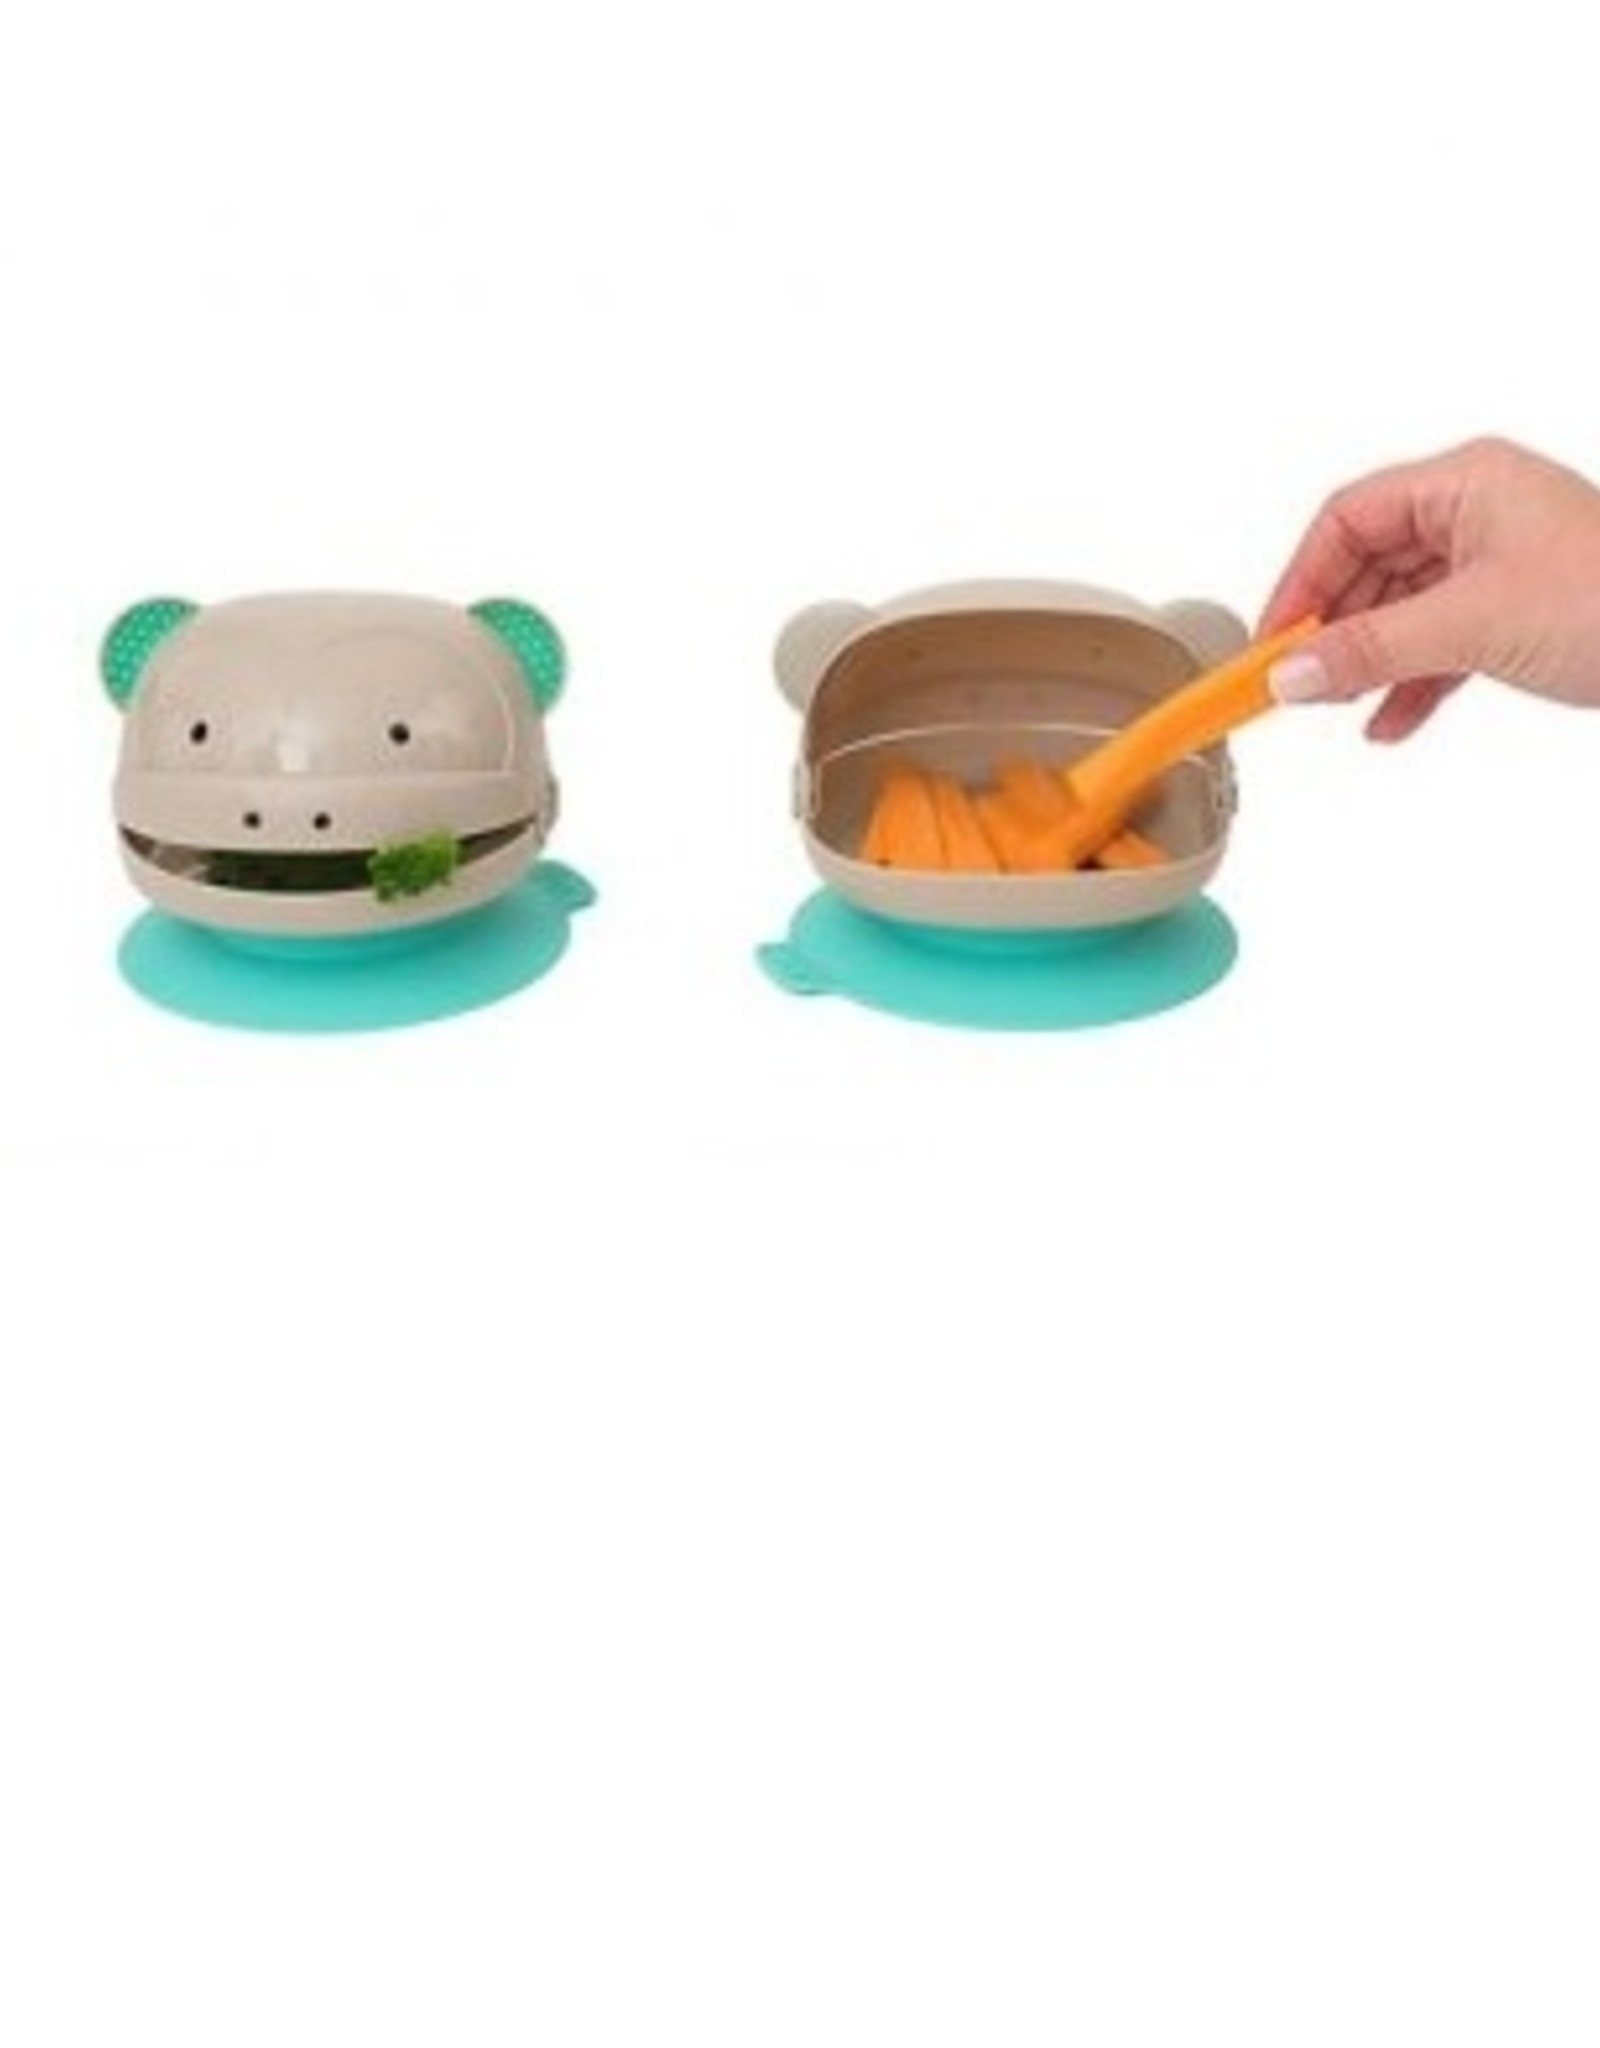 Taf Toys Bord Aap hide & eat